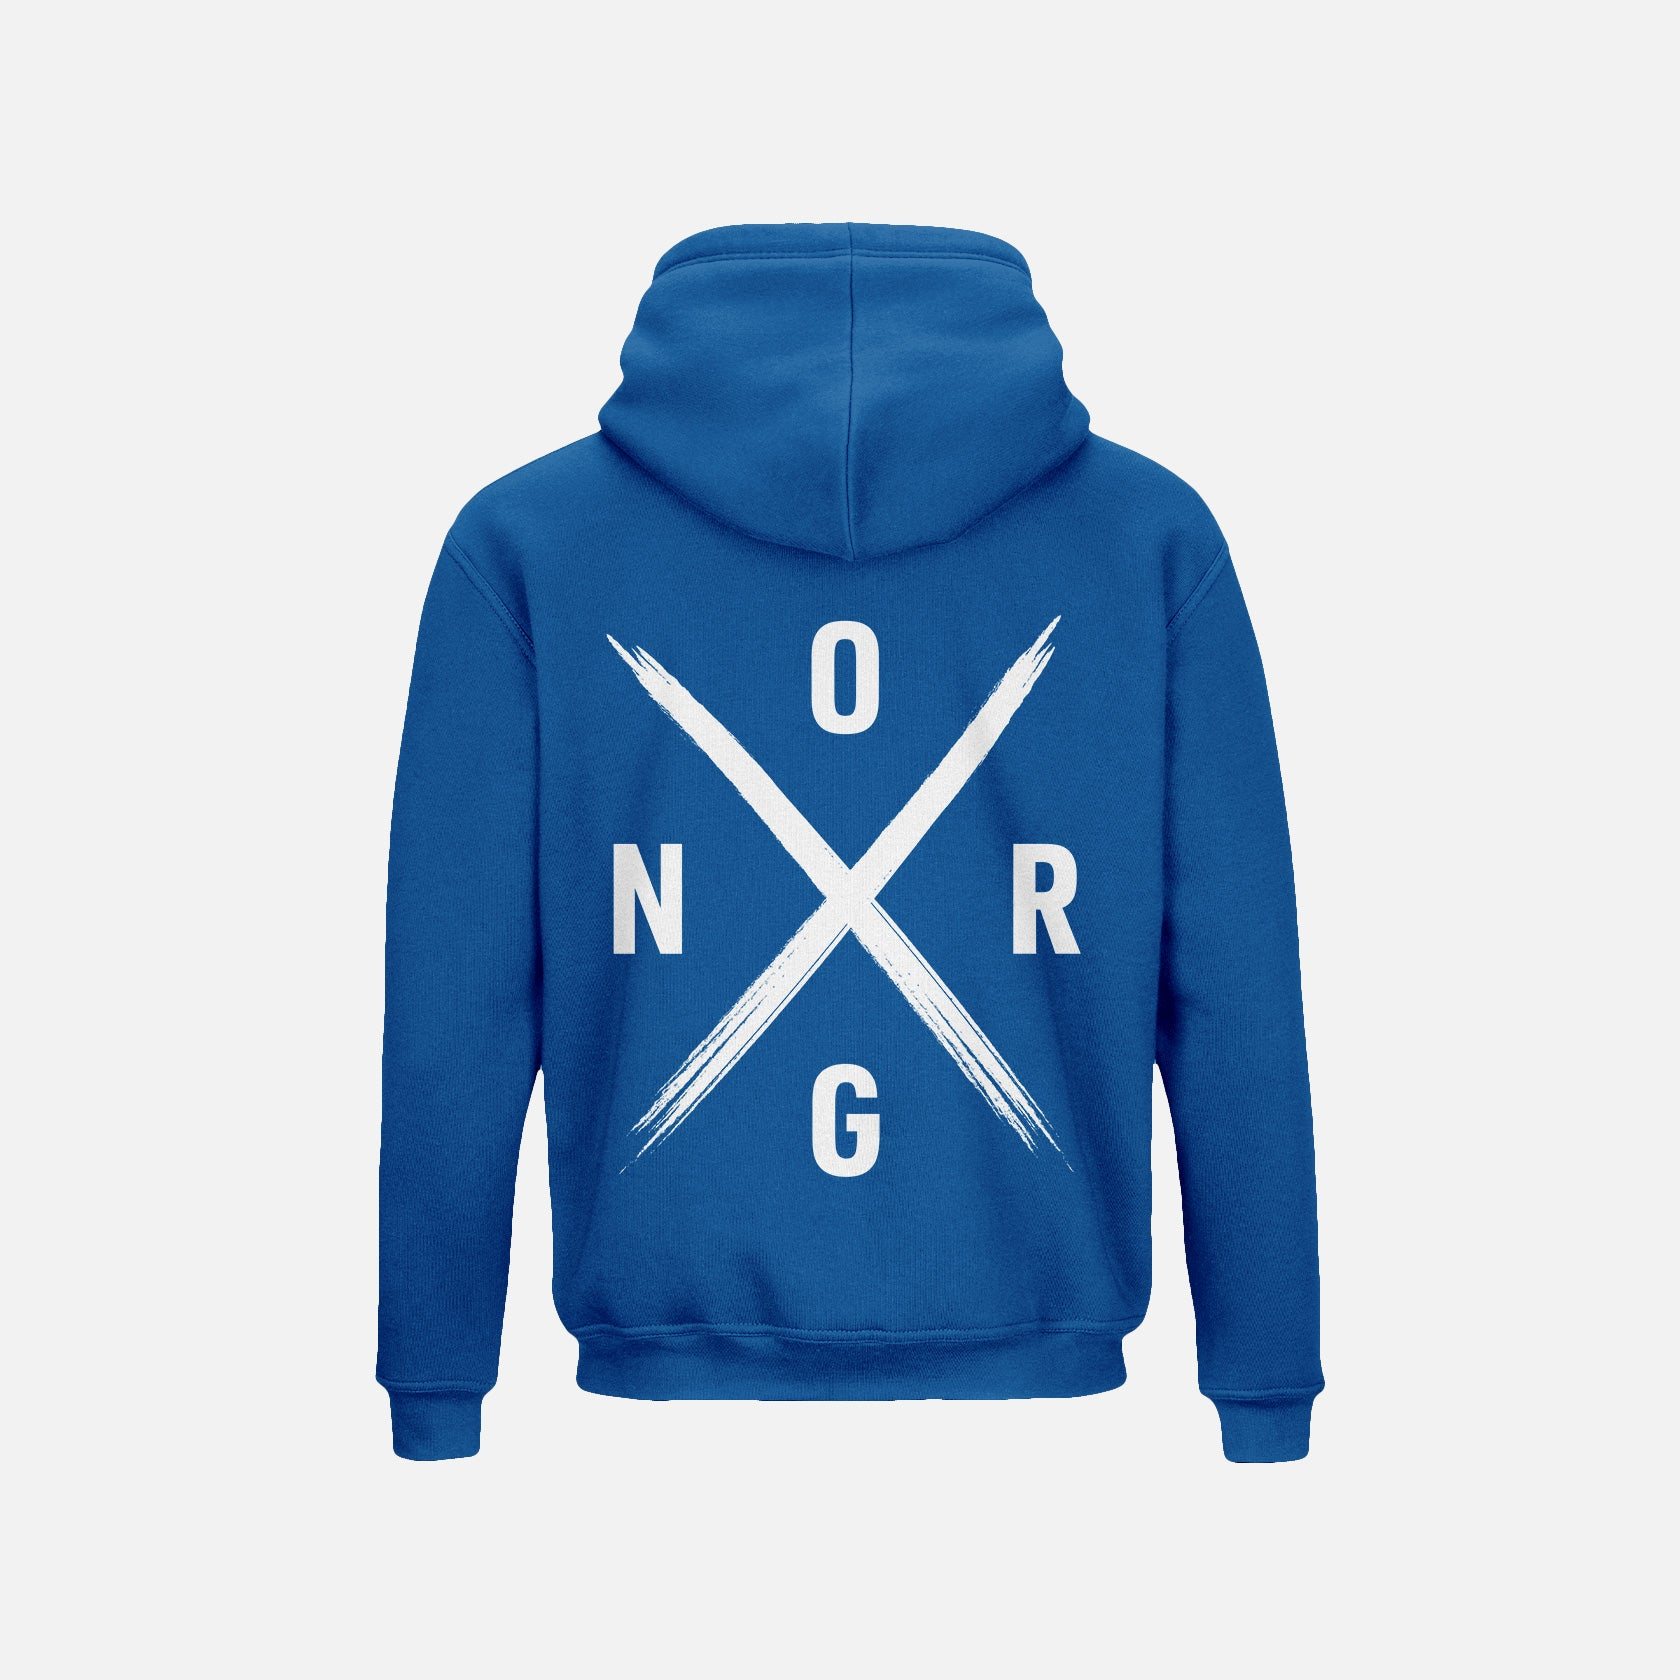 ORGNX Simple X Hoodie Blue Back